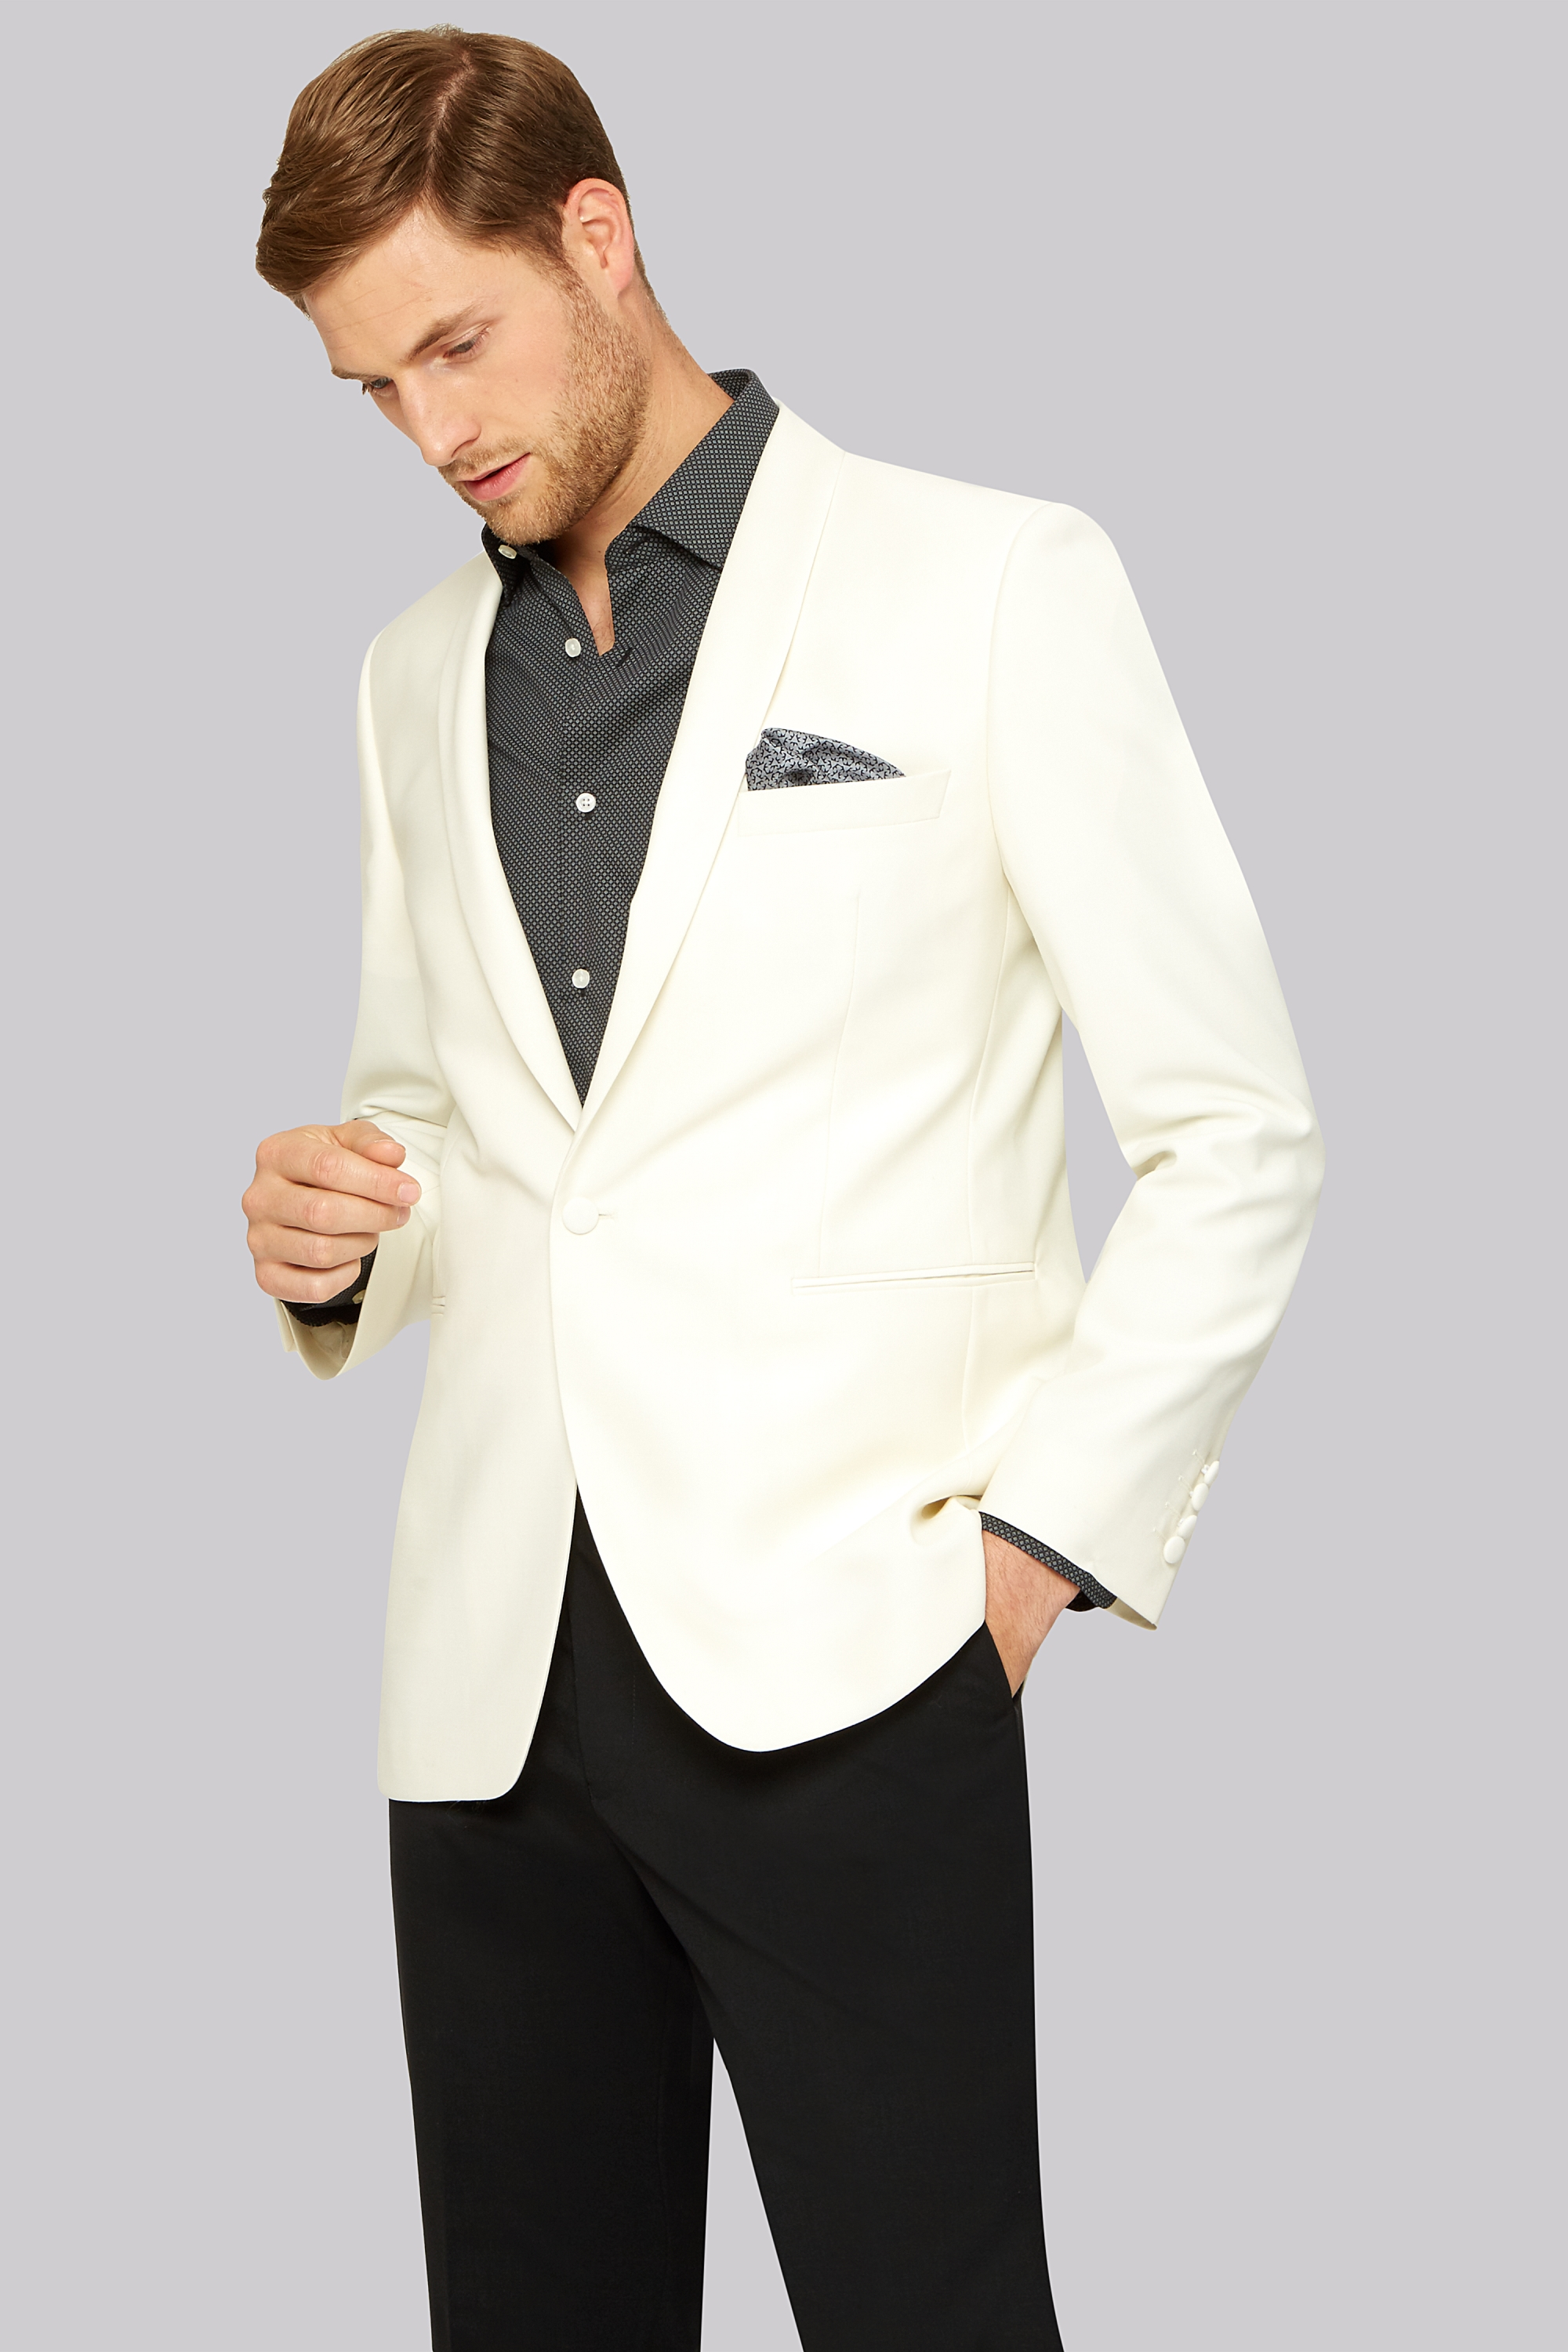 palmmetrf1.ga: white tuxedo jacket. From The Community. Amazon Try Prime All 2pc Shawl Collar Tuxedo Jacket Single Button Closure Slim Fit. Slim Fit 1 Button Shawl Lapel Collar Tuxedo Jacket Modern Dinner Blazer AZAR. by AZAR MAN. $ - $ $ 69 $ 99 00 Prime. FREE Shipping on eligible orders.